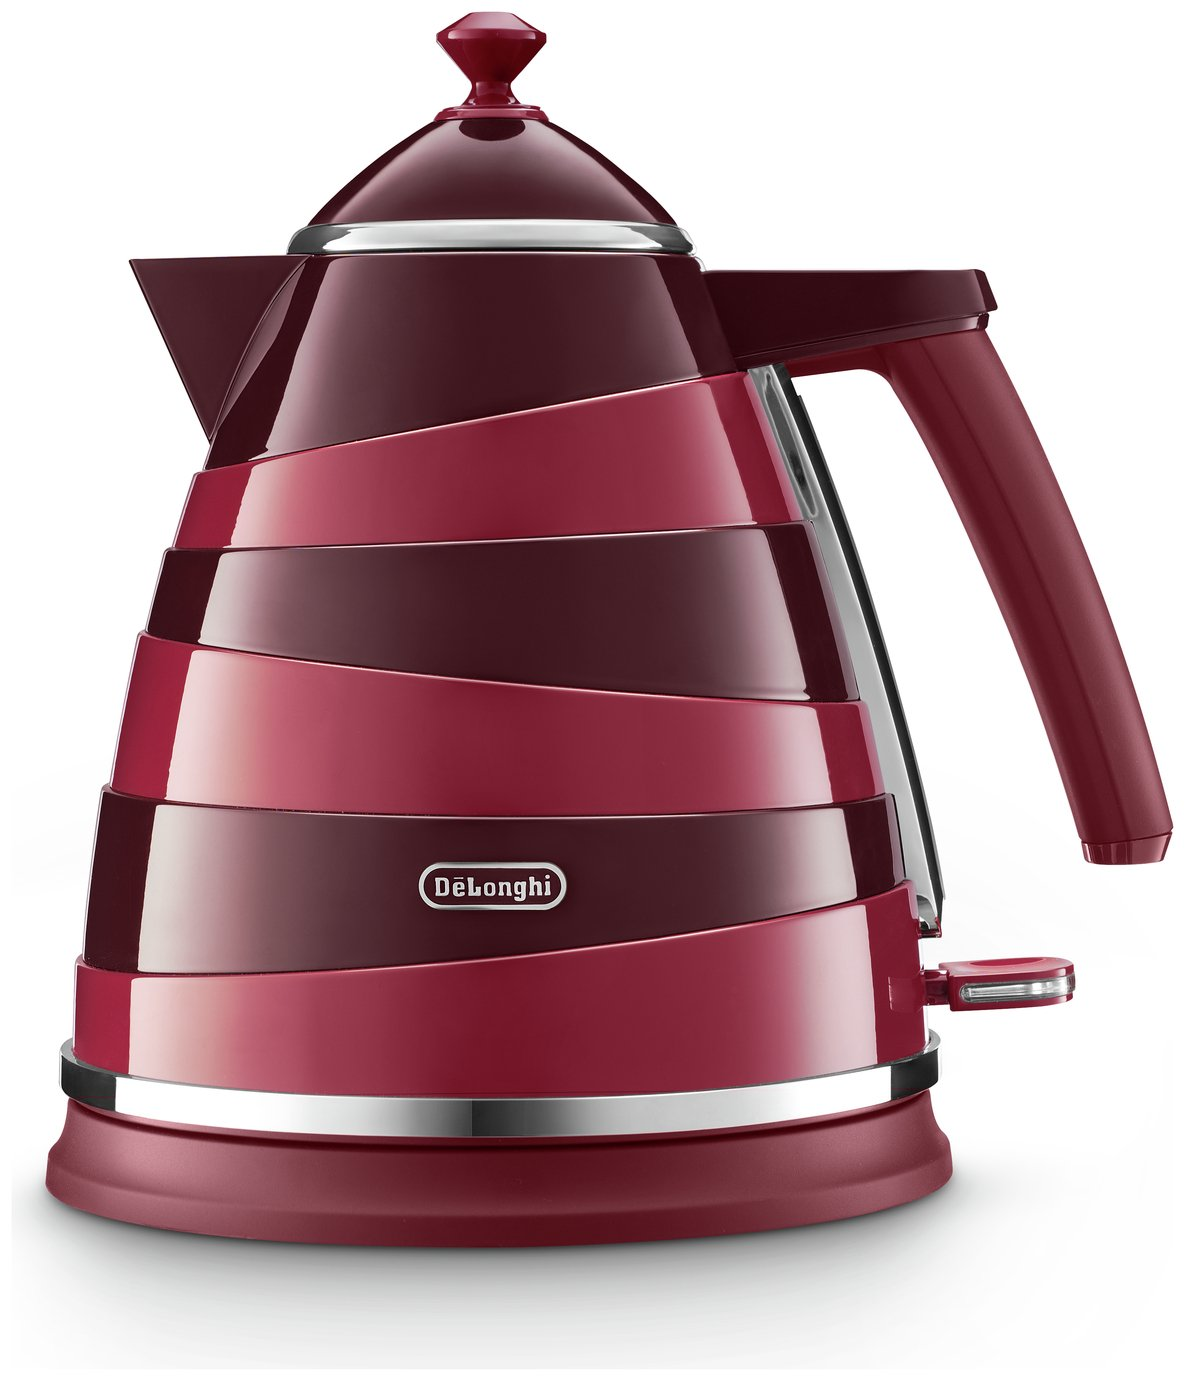 De'Longhi KBAC3001.R Avvolta Kettle - Red & Black